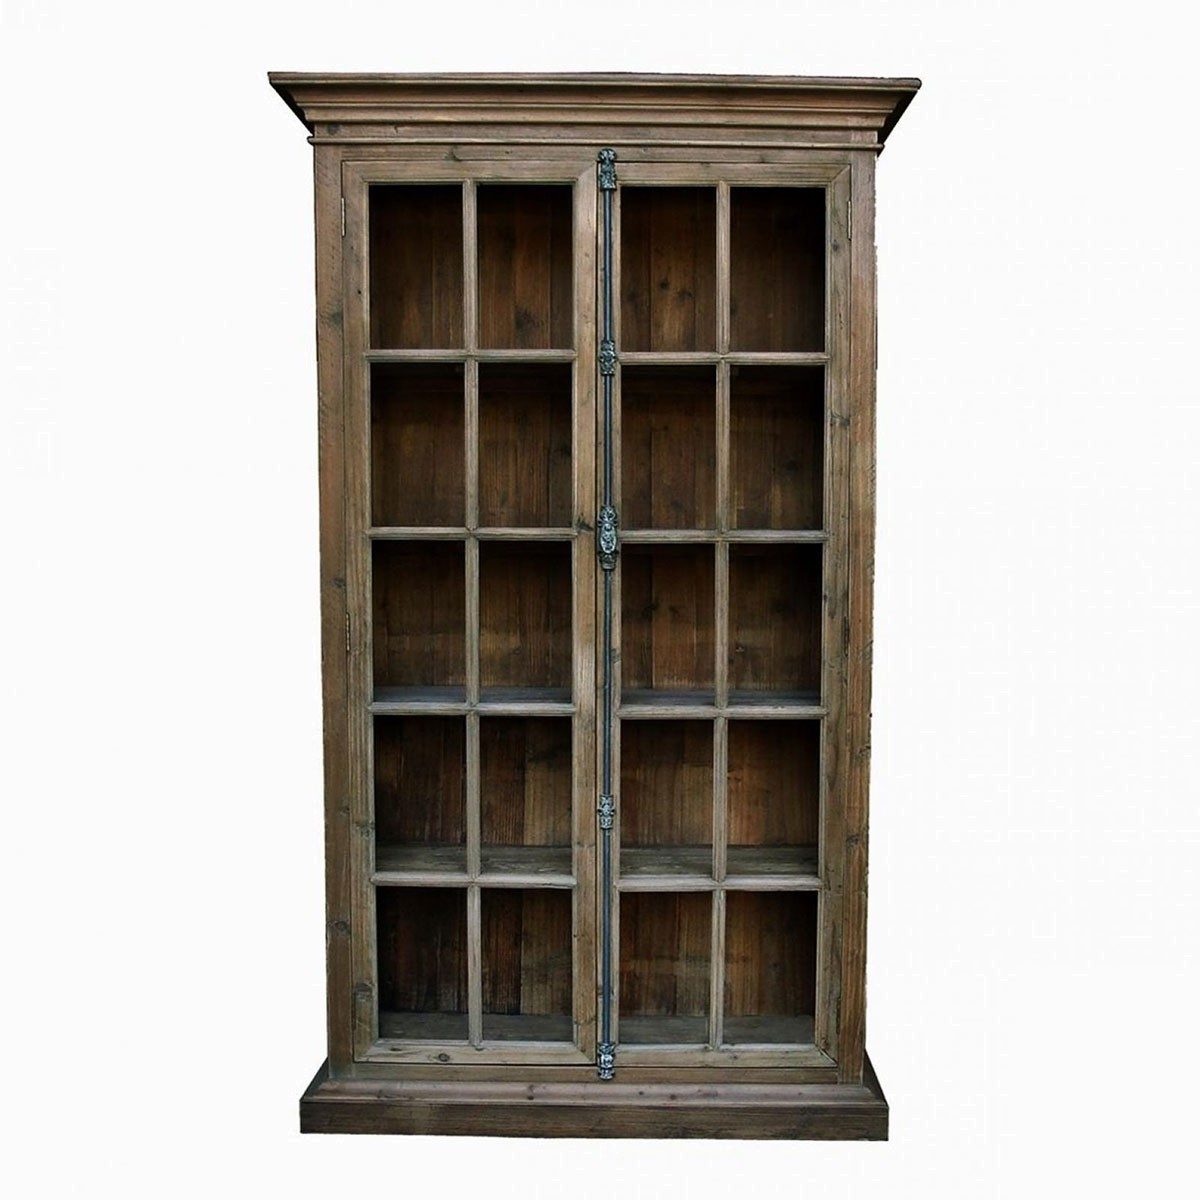 Image of: Library Bookcase Design